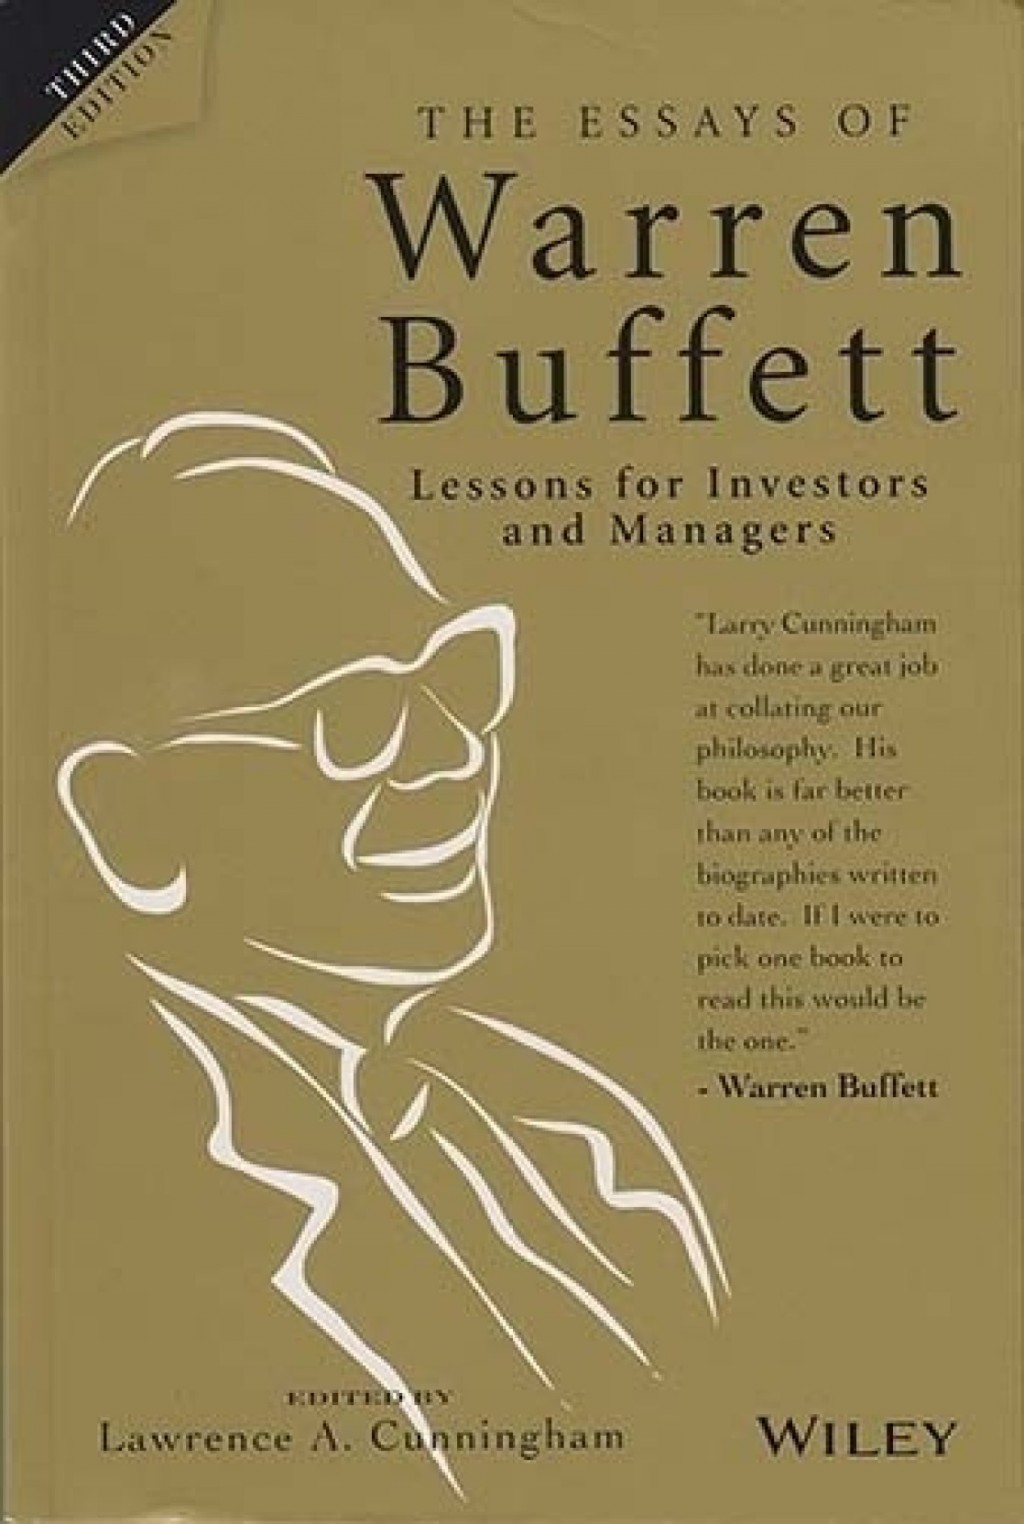 014 Essay Example The Essays Of Warren Buffett Lessons For Investors And Managers Original Striking 4th Edition Free Pdf Large